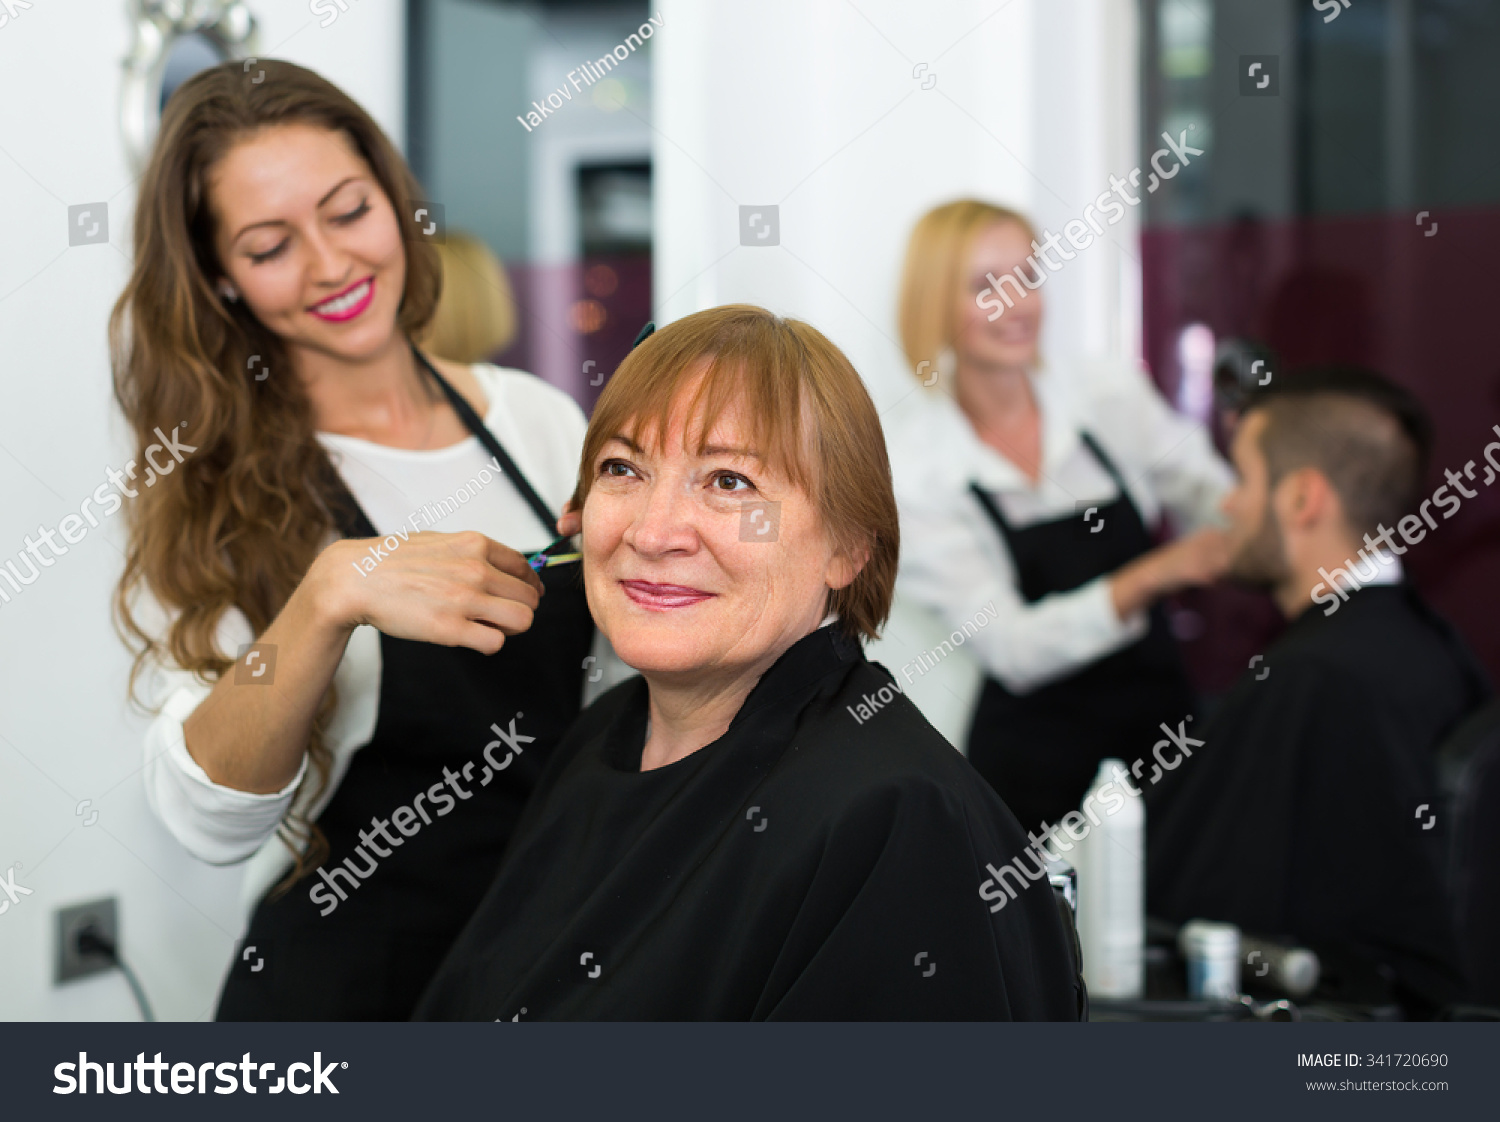 Salon Senior Portrait Senior Mature Female Hairdressing Salon Stock Photo